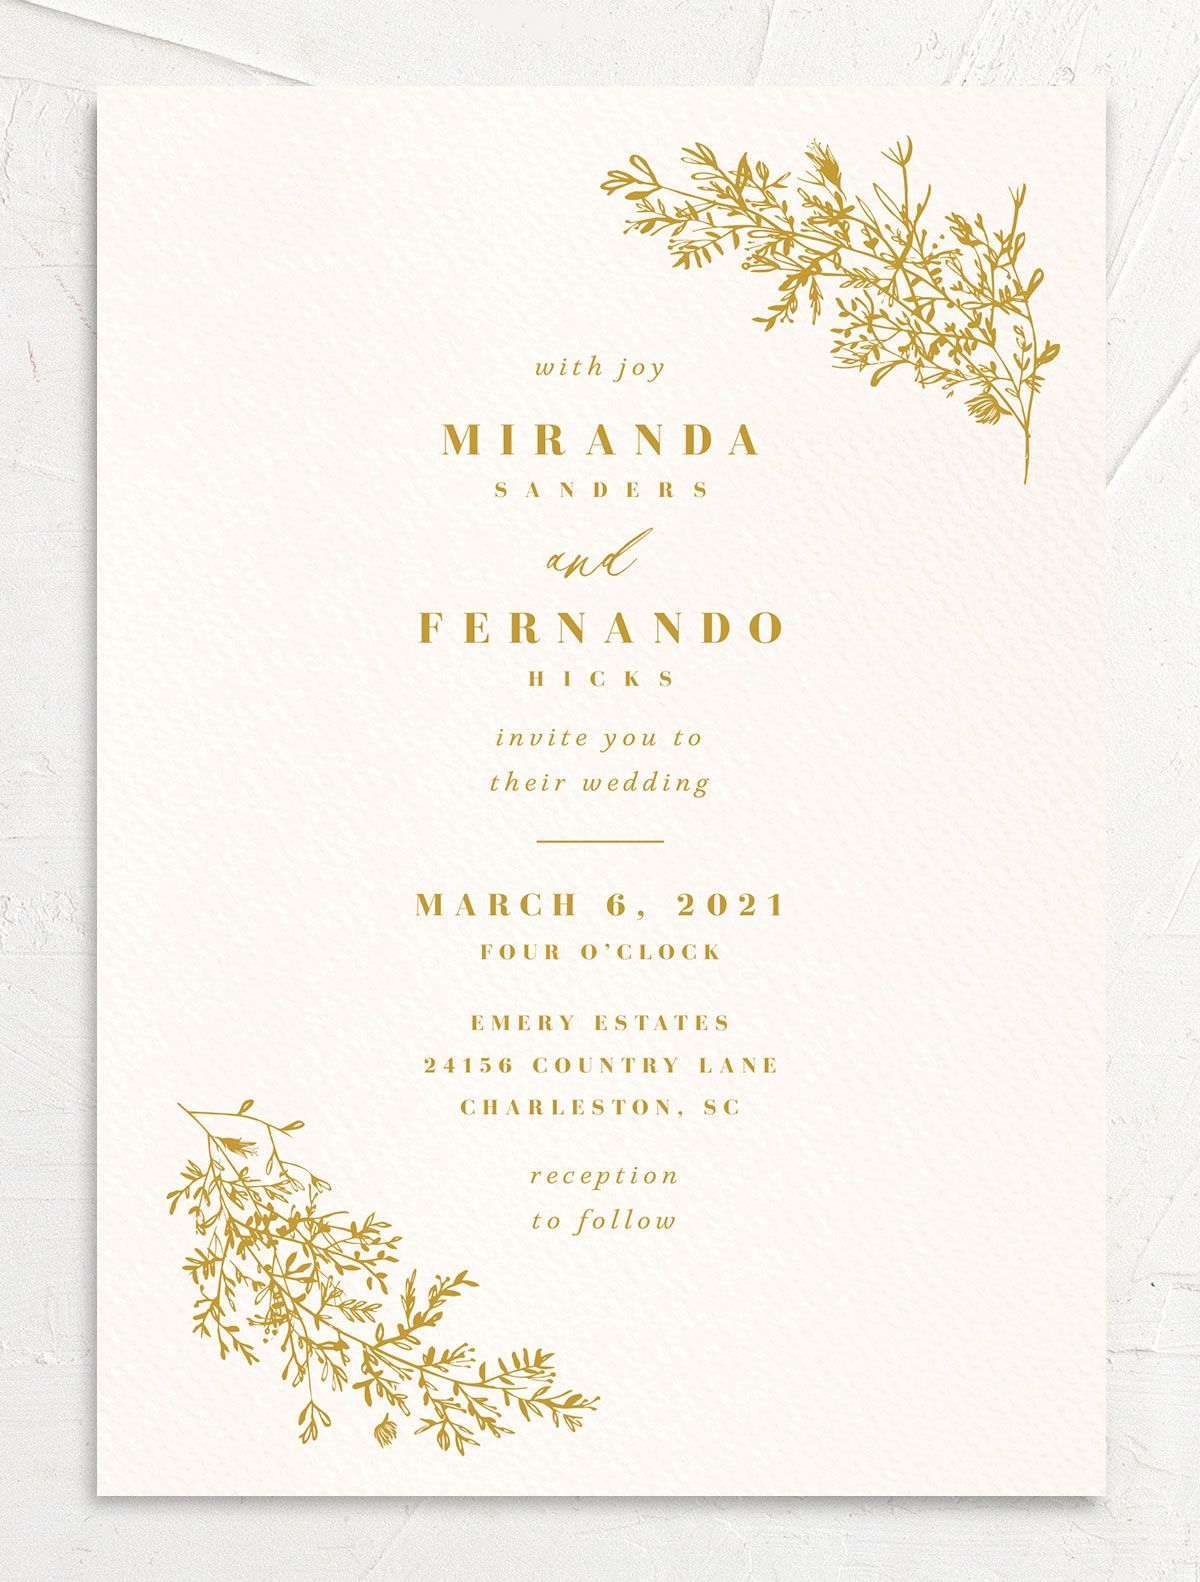 Botanical branches wedding invitation in mustard yellow